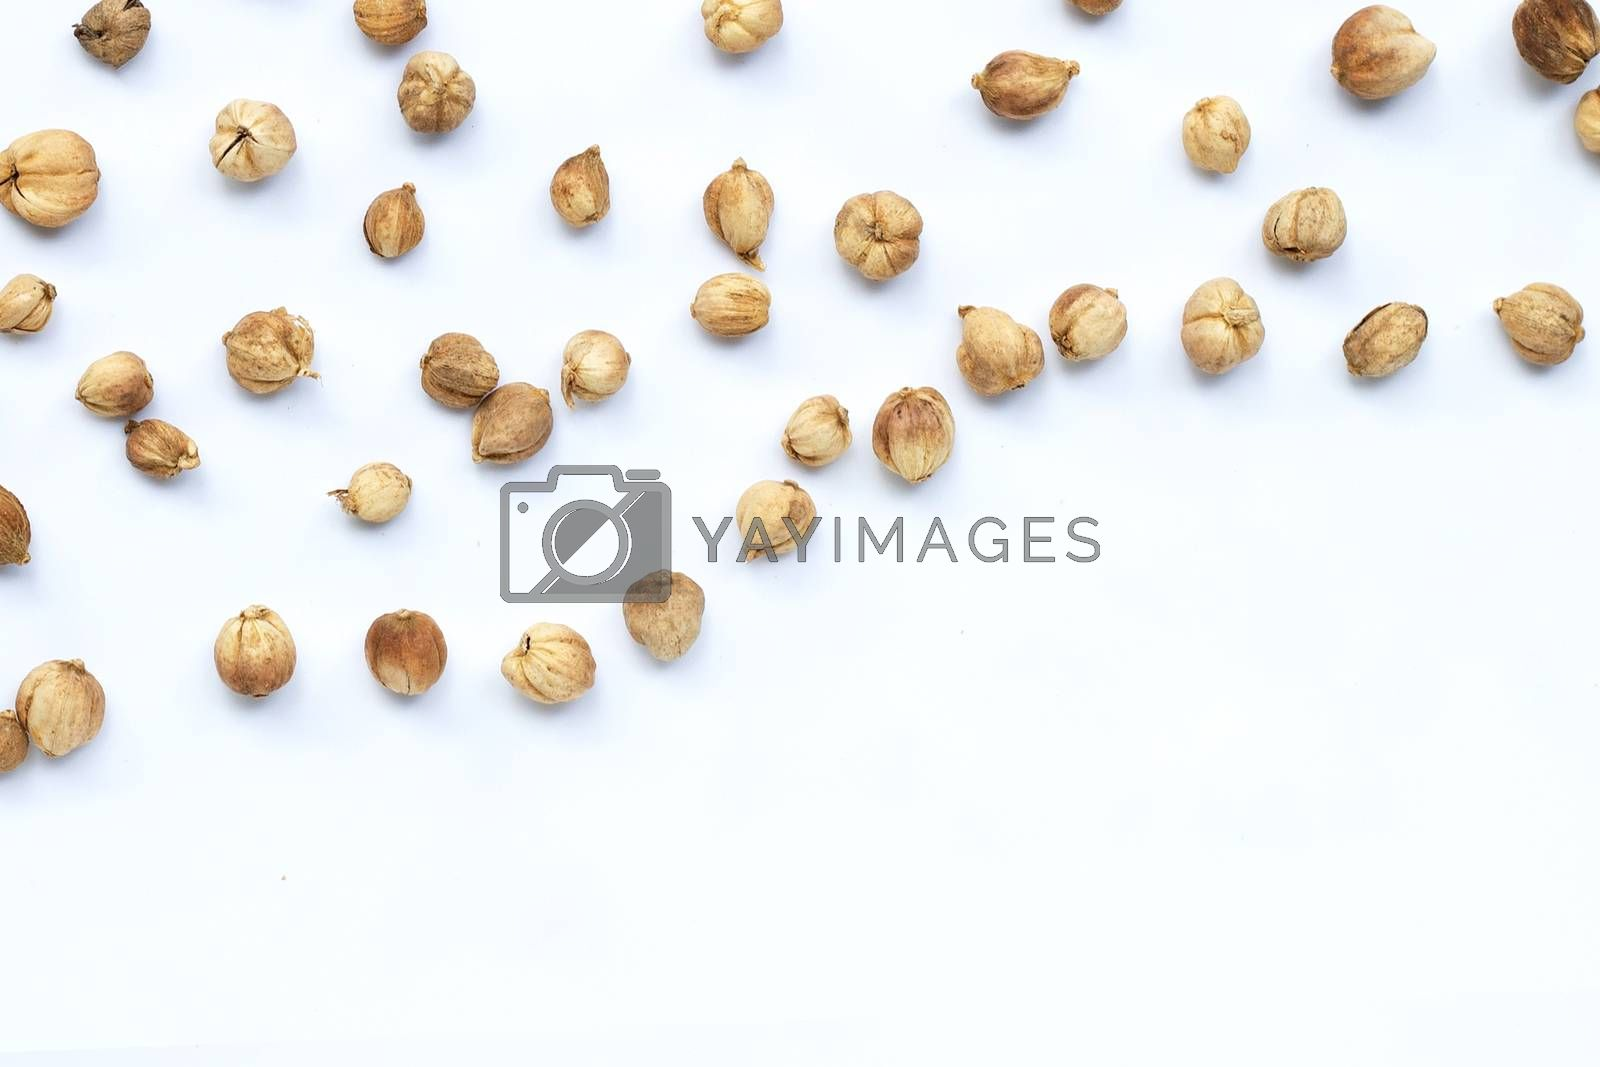 Siam Cardamom or Kapulaga on white background.